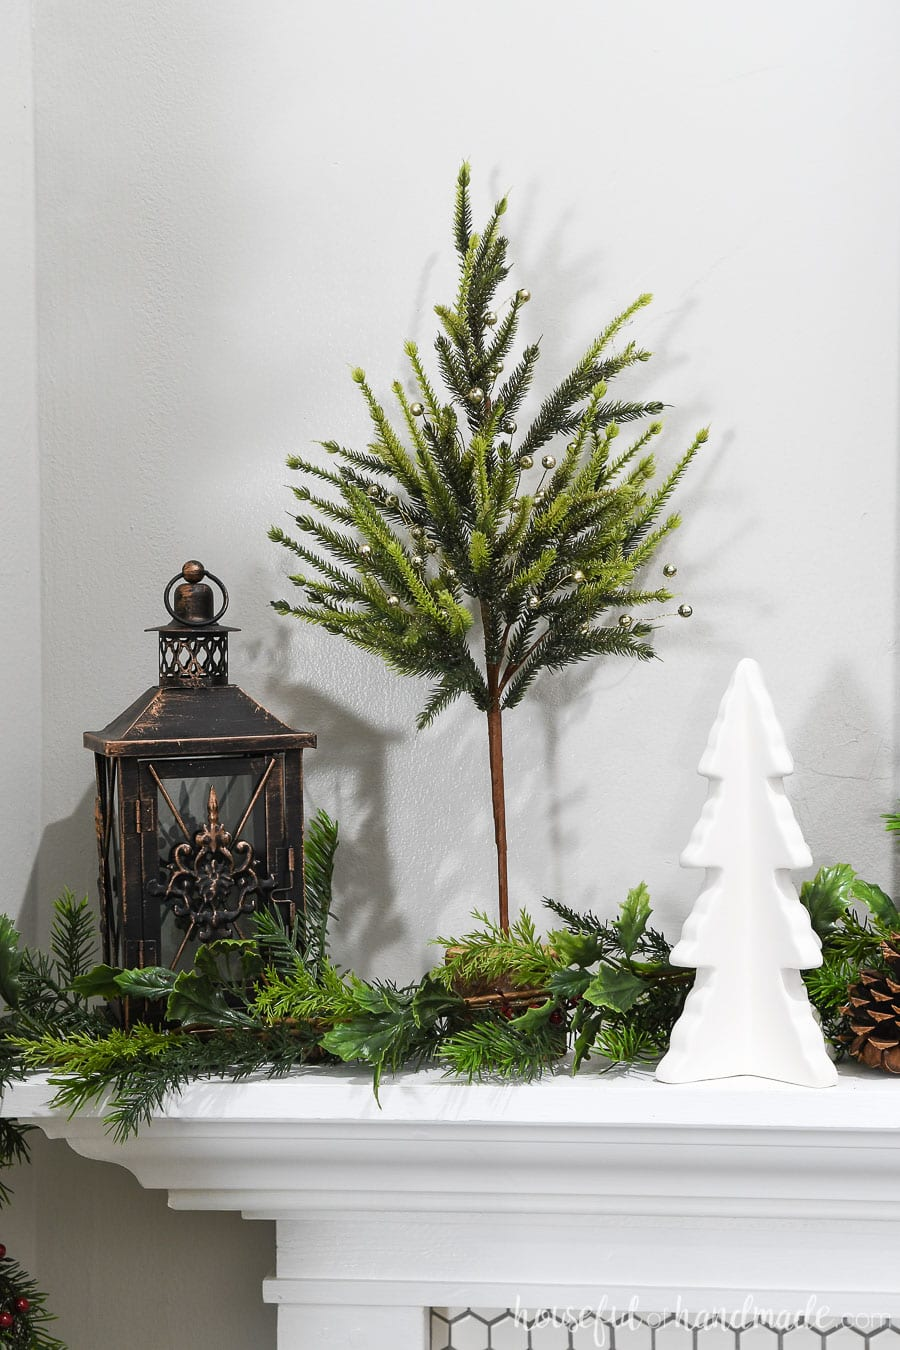 Quirky Christmas trees and lantern decorating a mantel for Christmas.